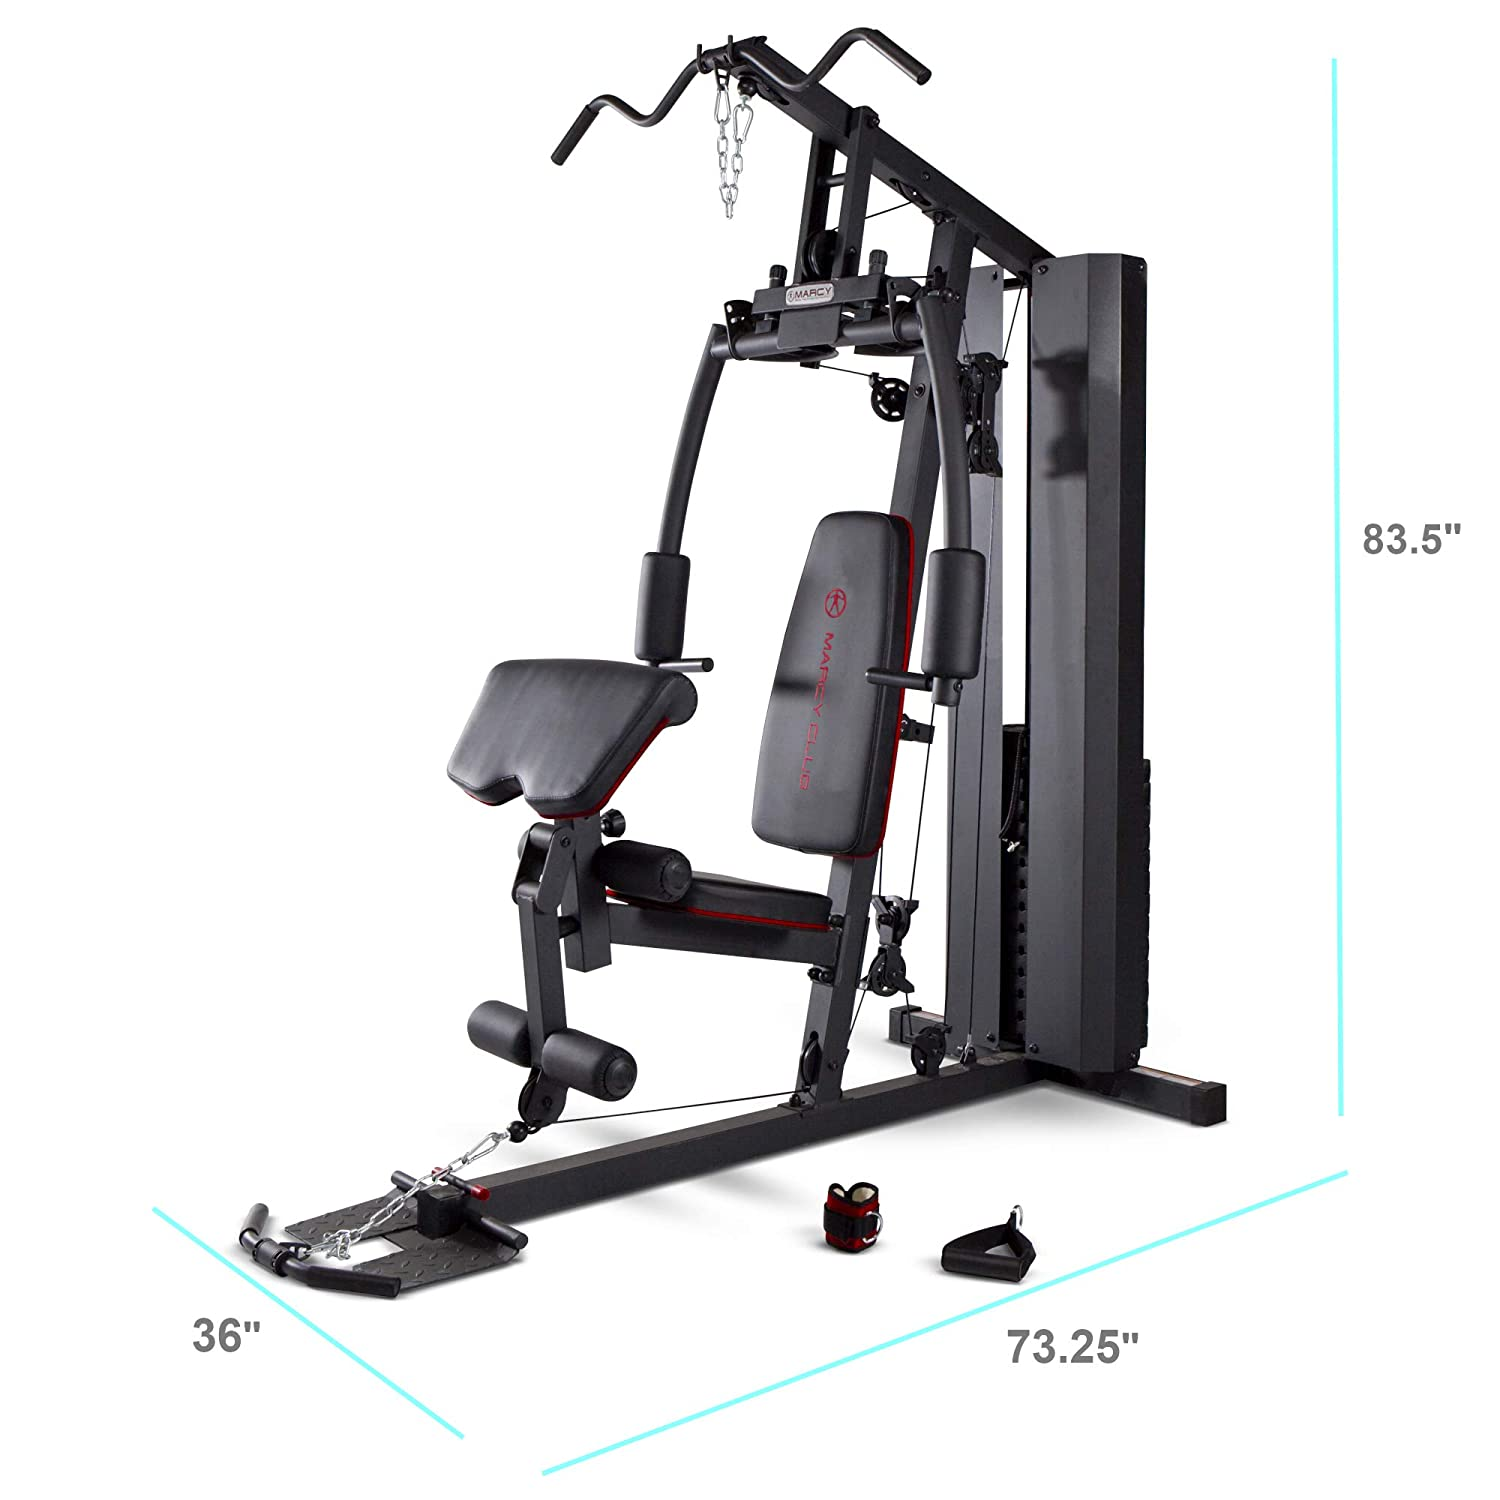 Amazon.com : marcy stack dual function home gym 200 lb. stack mkm